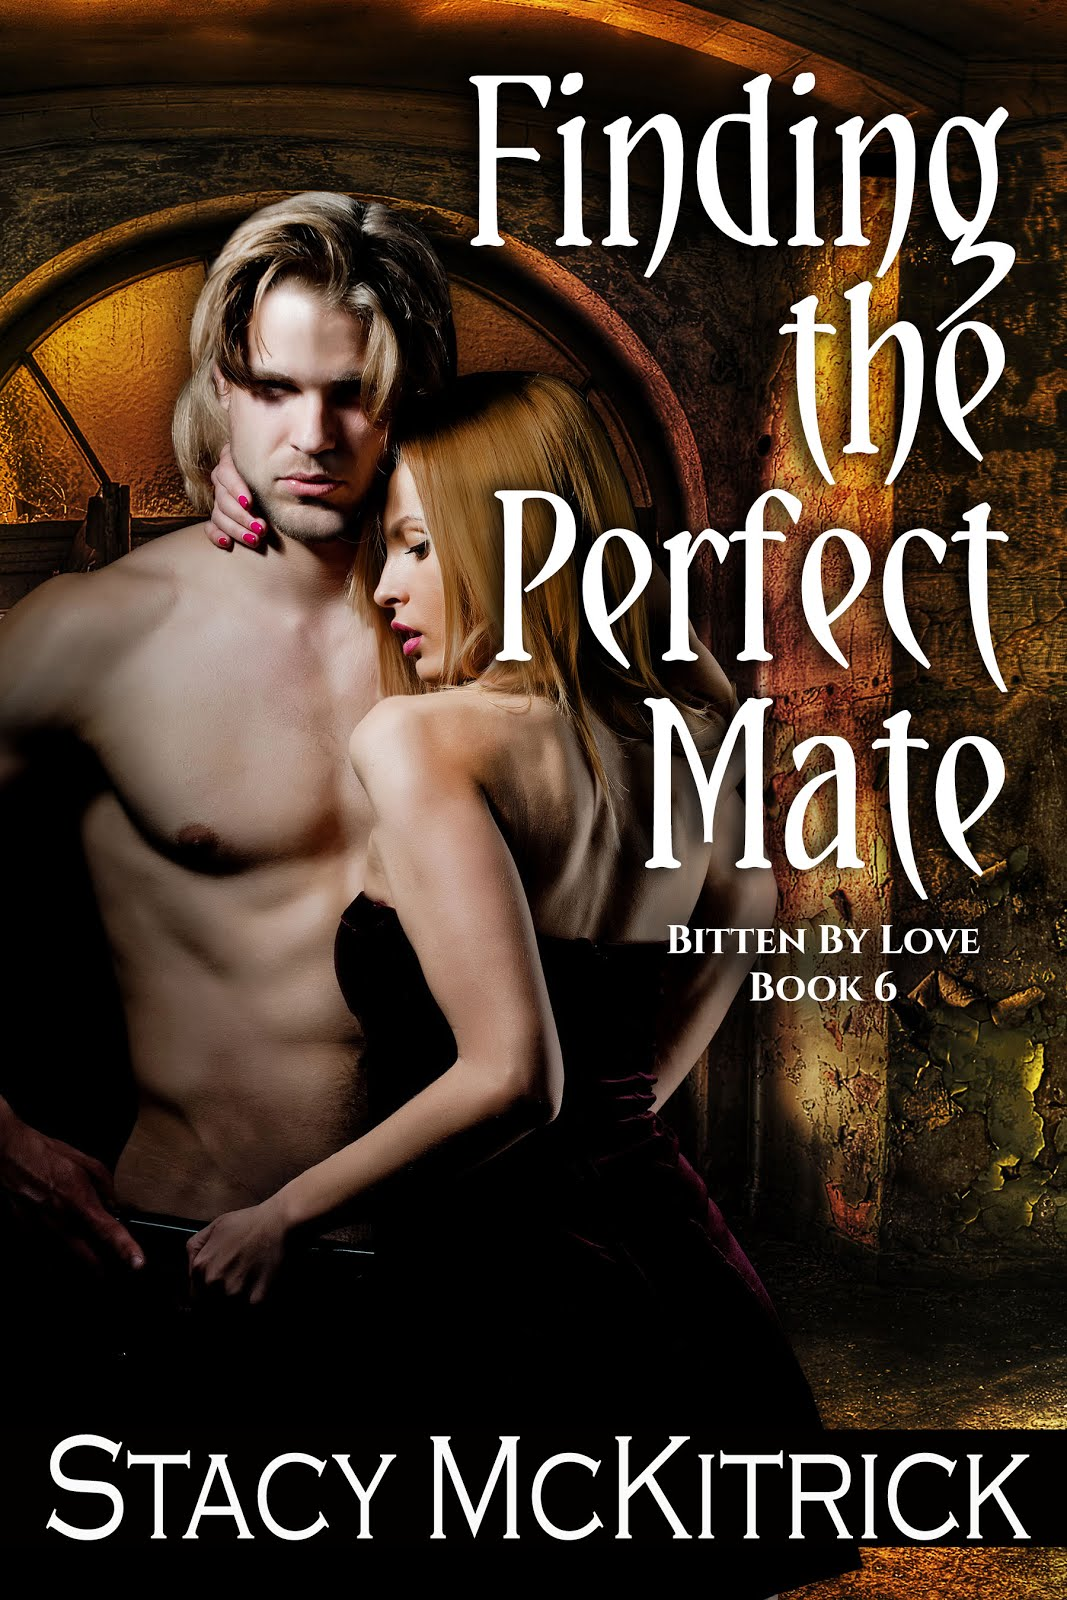 Book 6 in the Bitten by Love Series